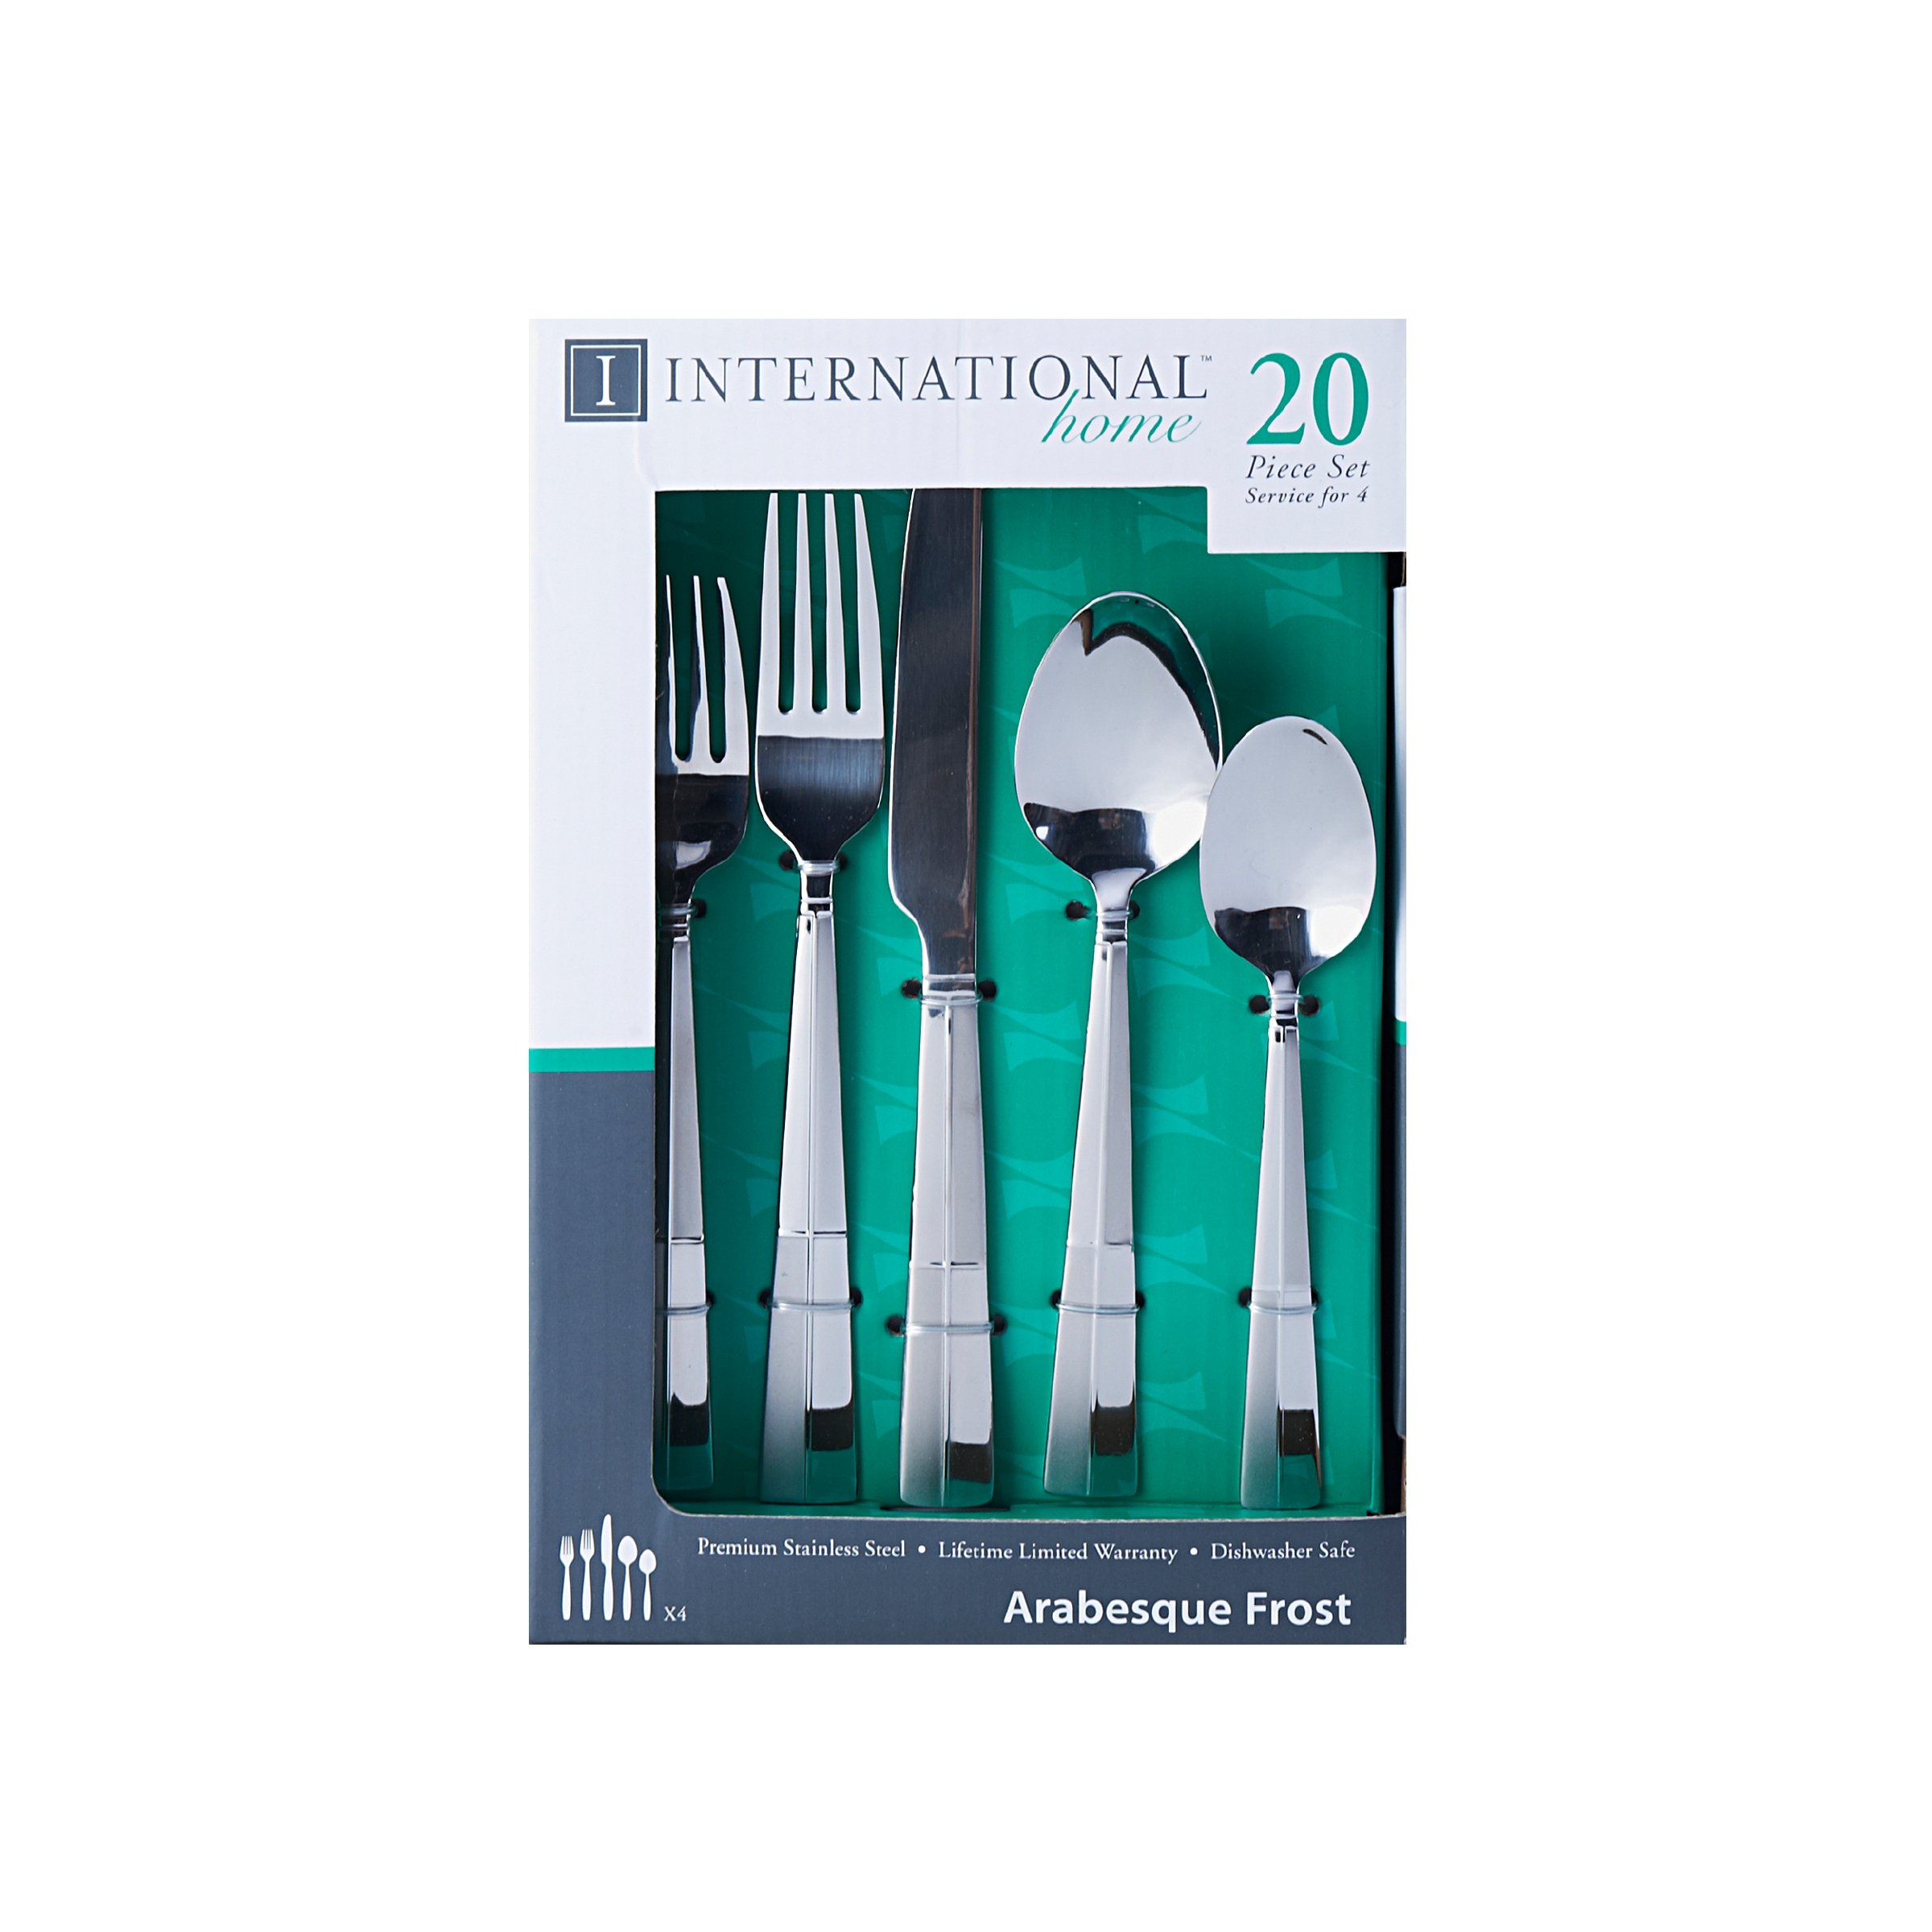 International Silver 5114325 Arabesque Frost 20-Piece Stainless Steel Flatware Set, Service for 4 by International Silver (Image #2)